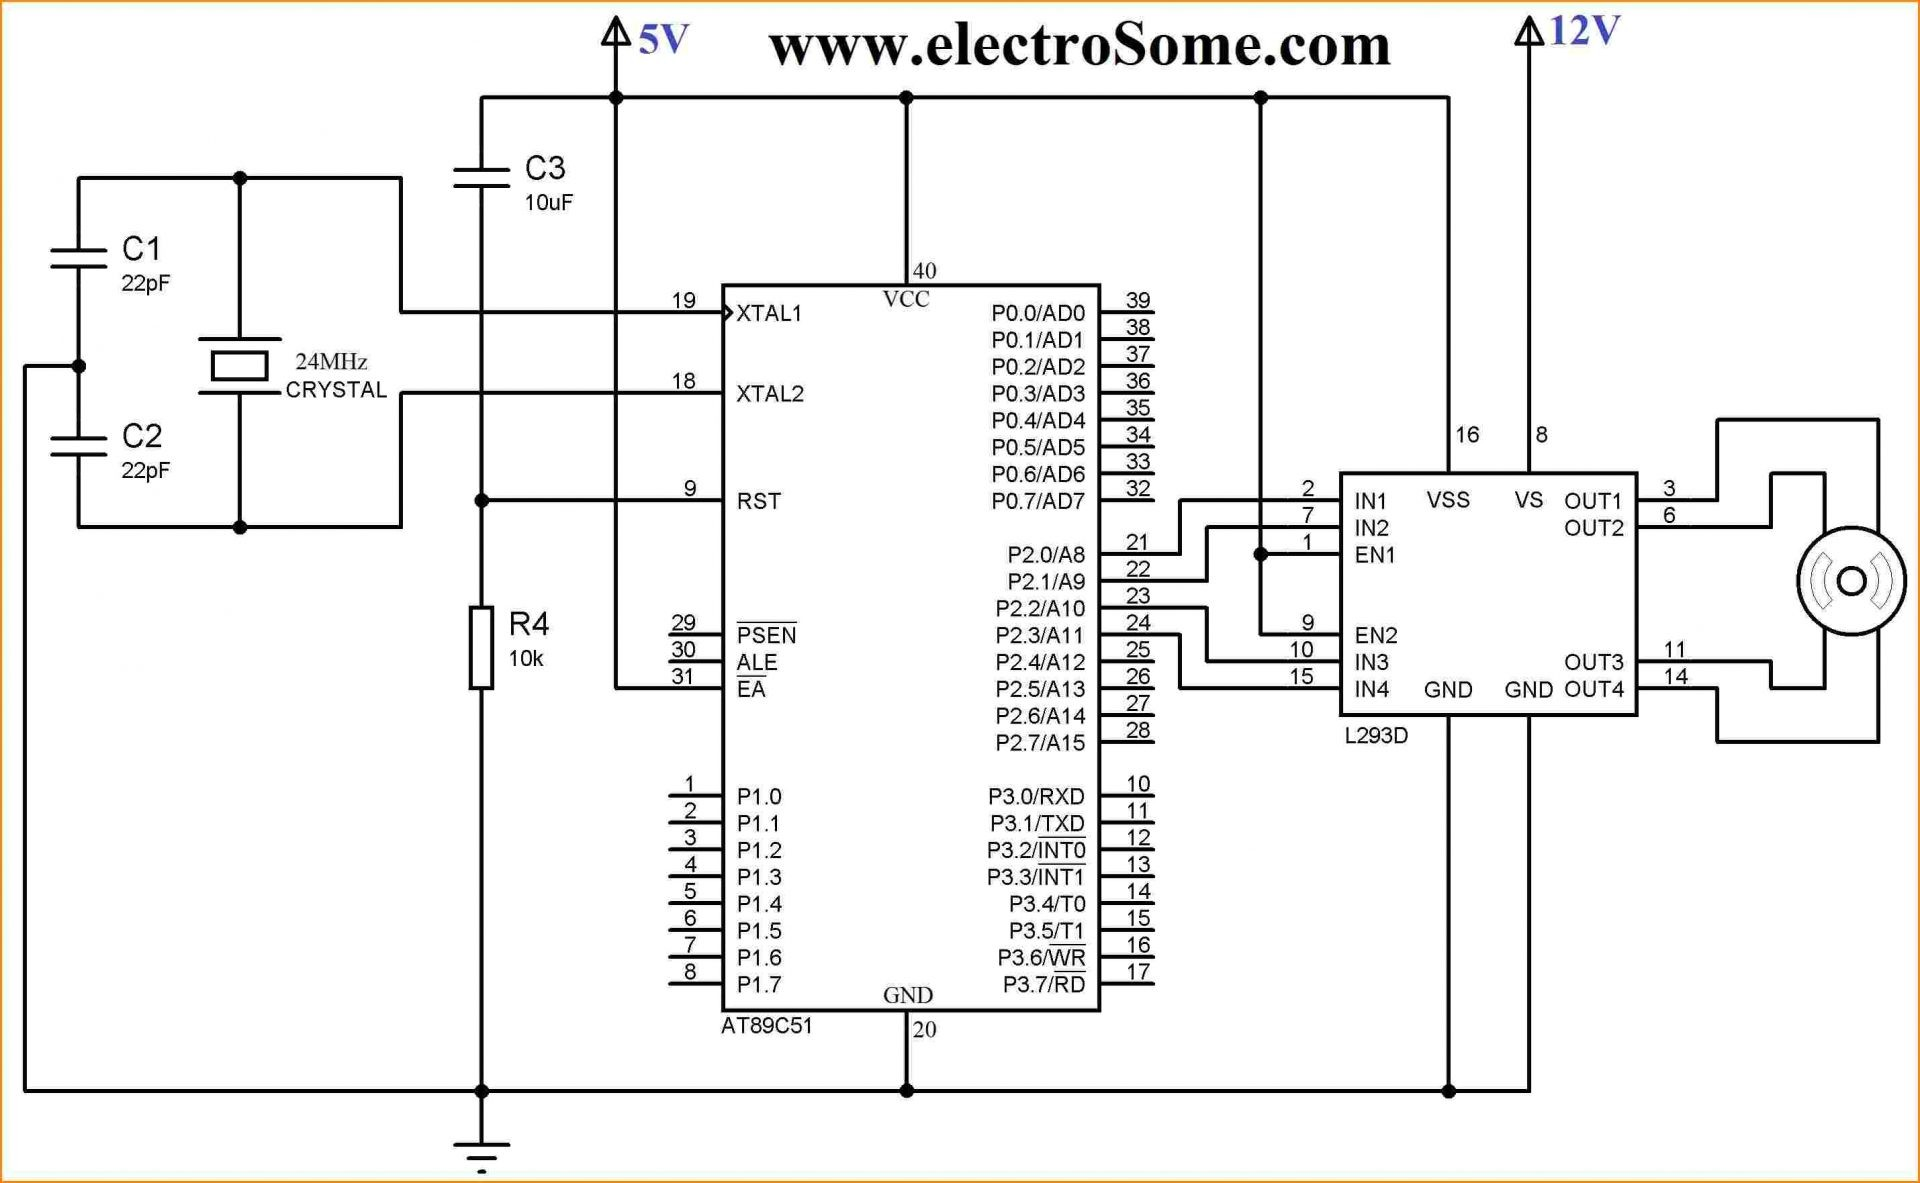 Cmos Camera Wiring Diagram Samsung Security For In Bunker Hill Interfacing Bipolar Stepper Motor With Using